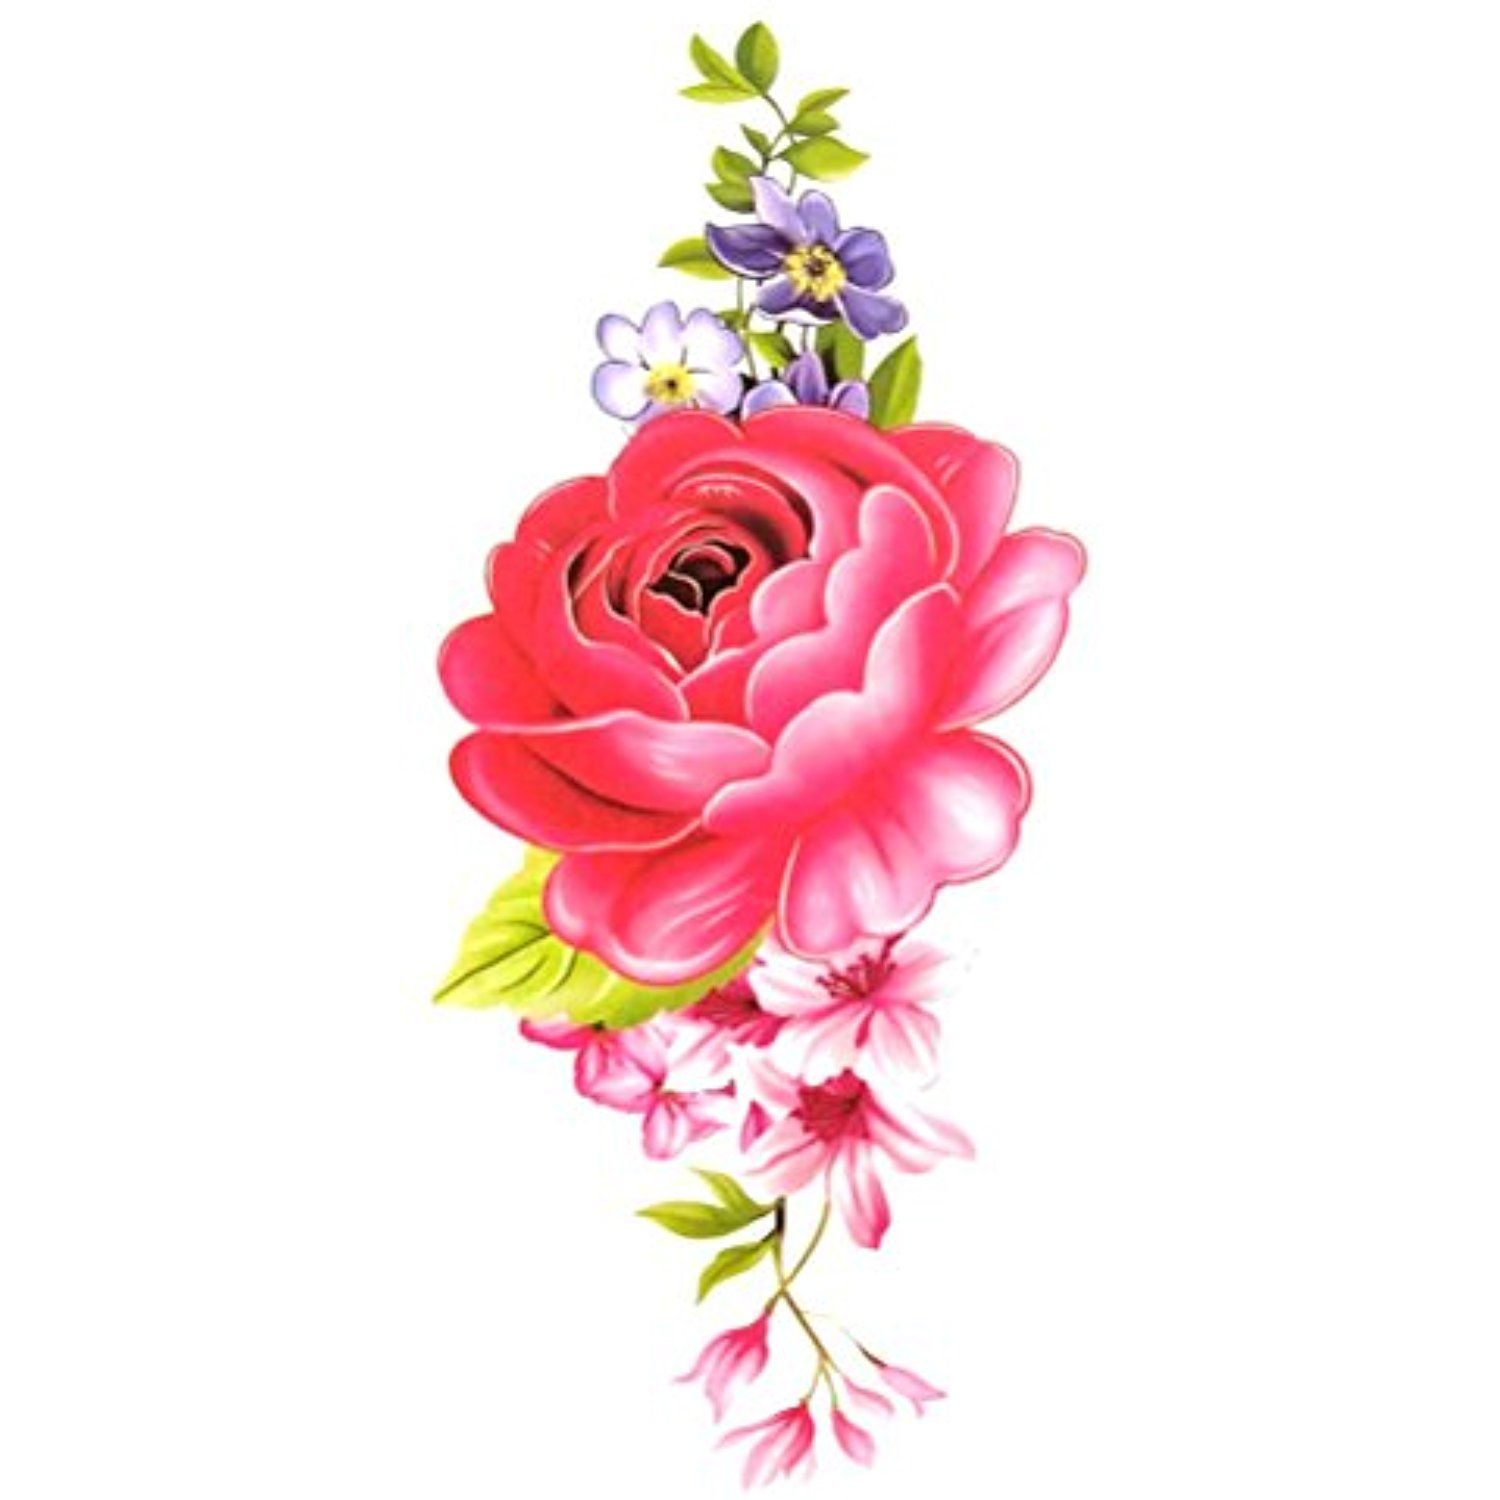 Oottati Women Floral Arm Chest Temporary Tattoo Flower (2